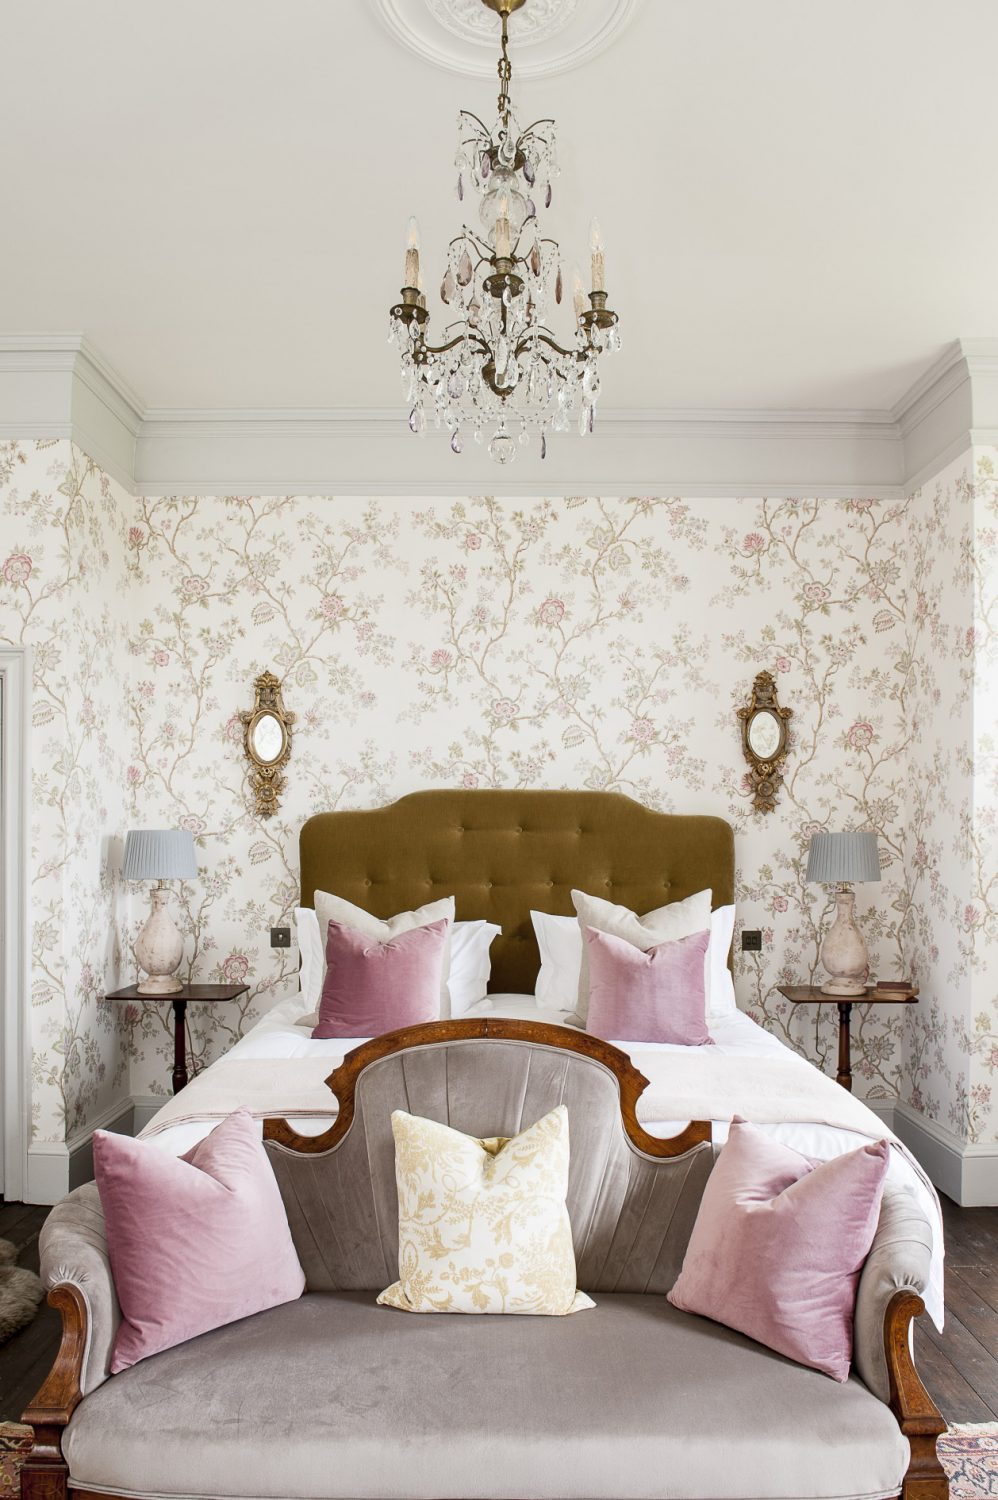 The Pink Room is papered with Lewis & Wood, Indienne